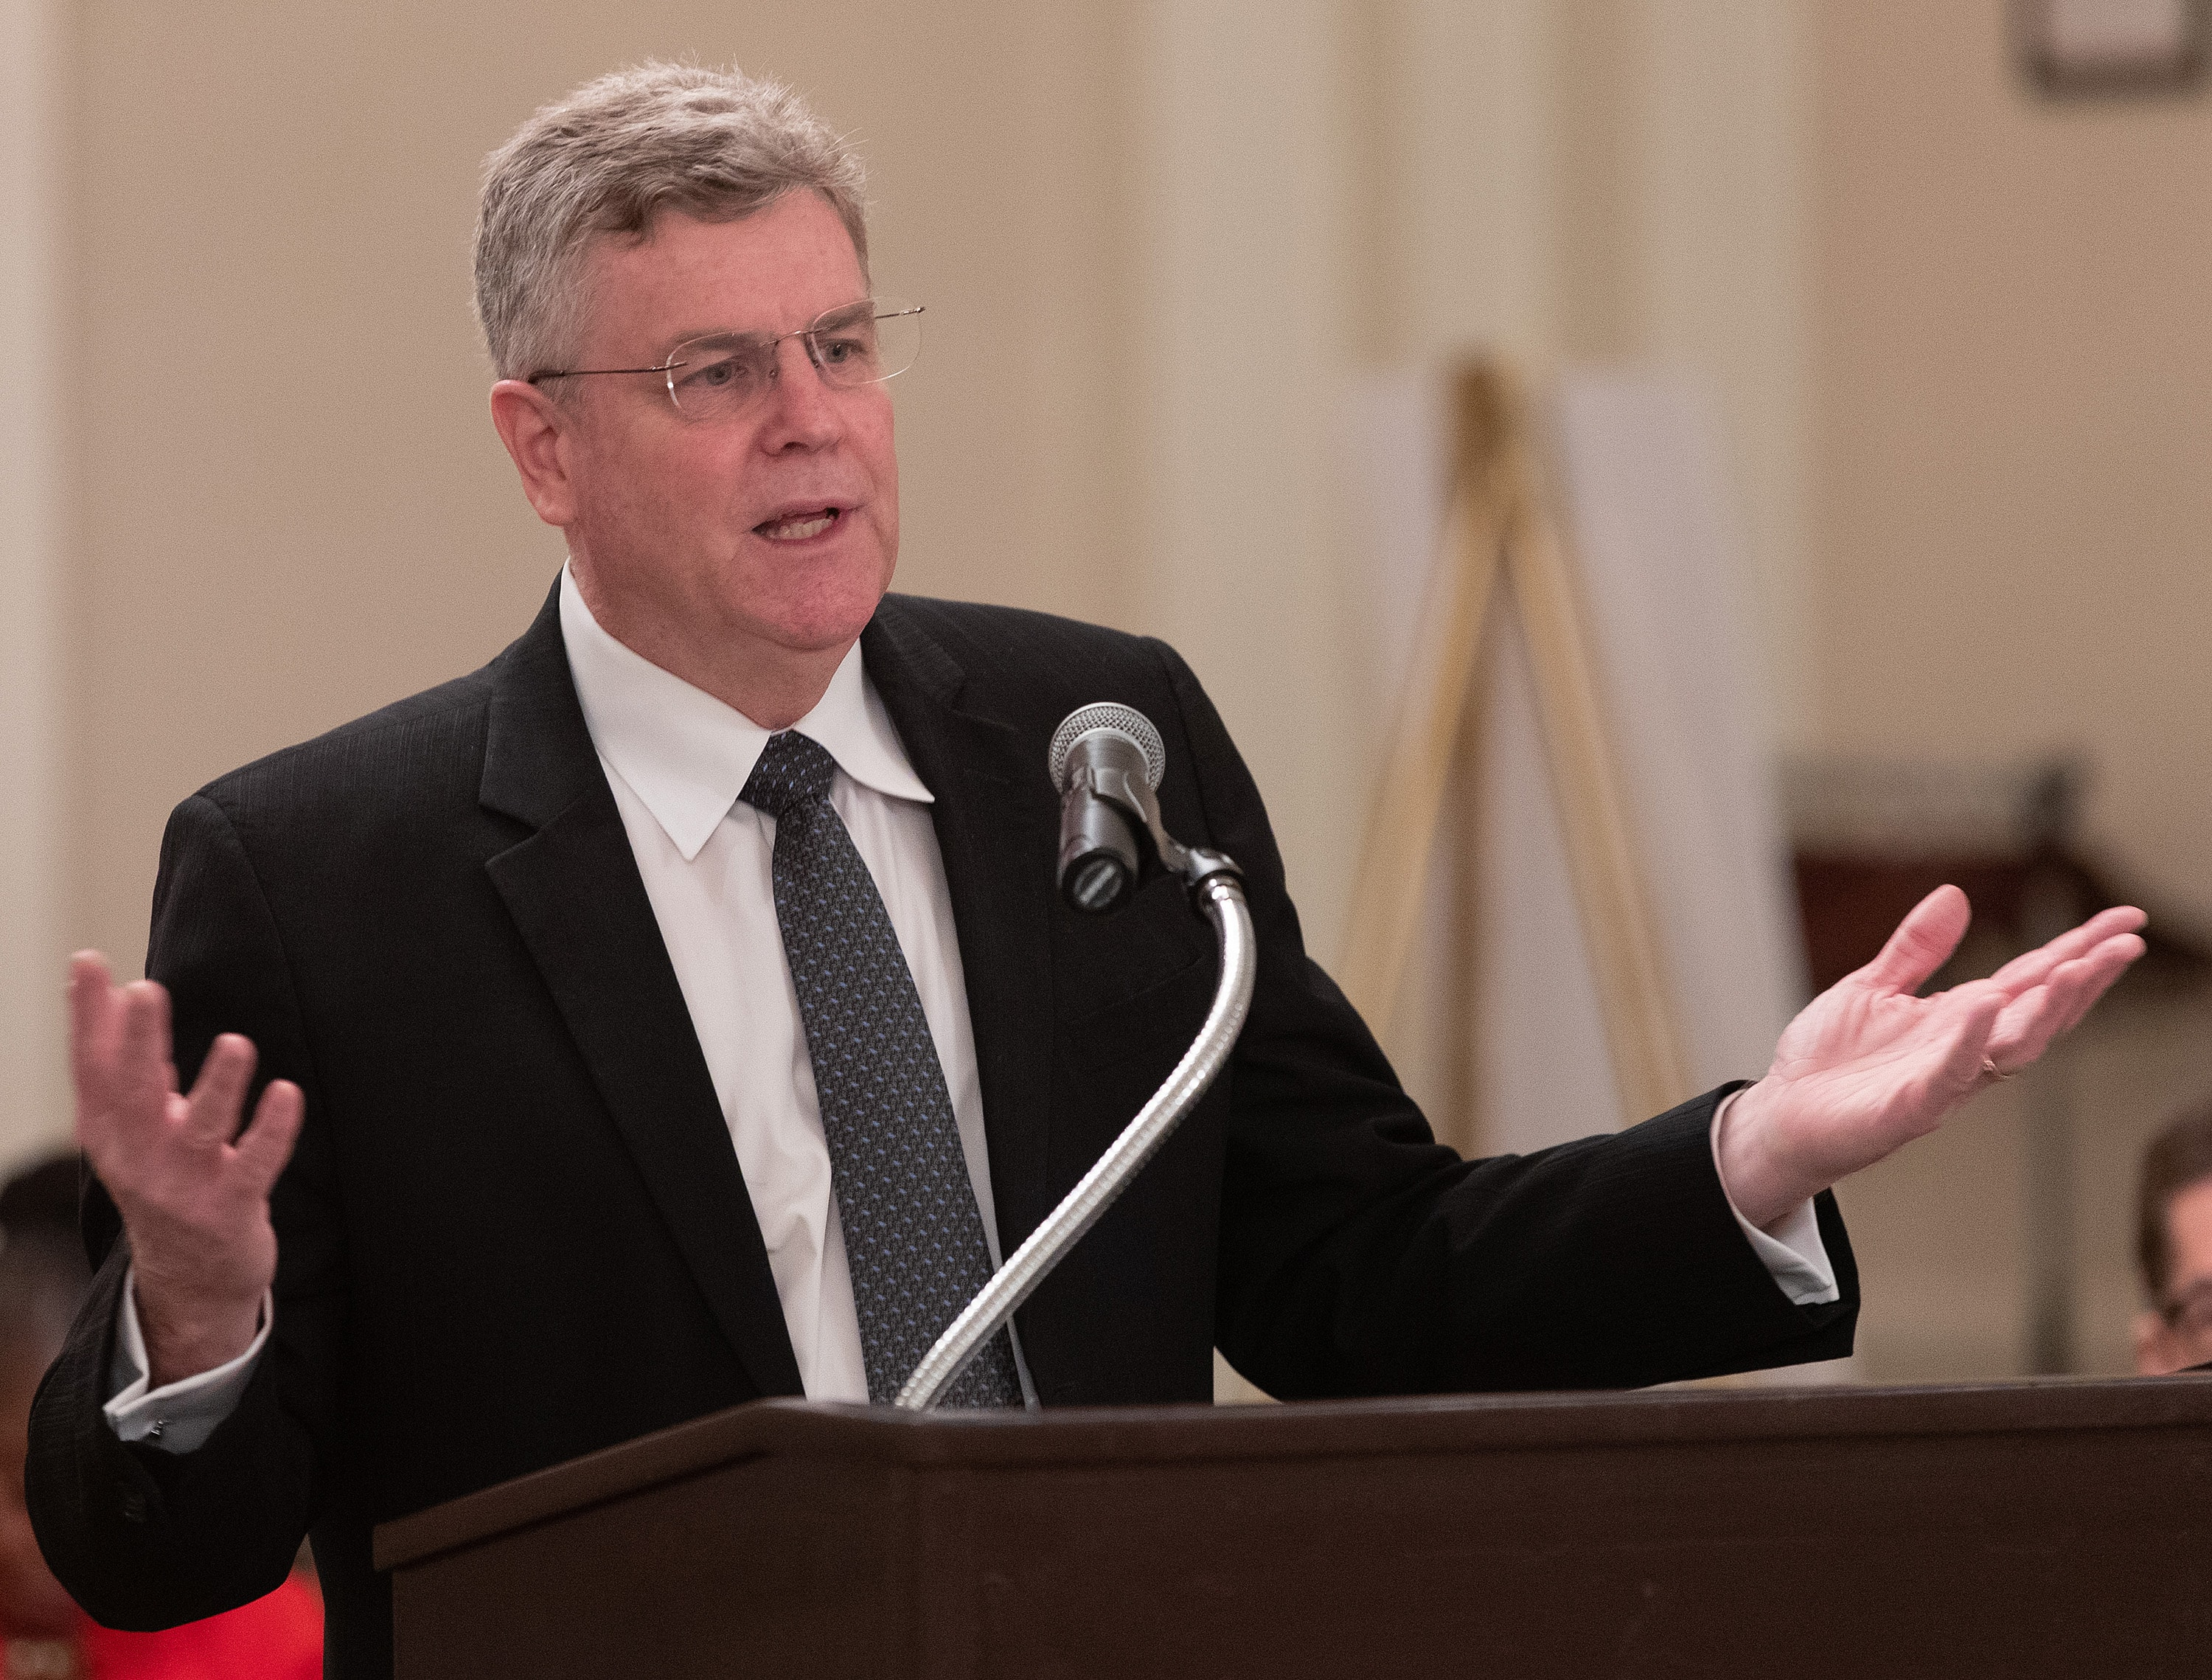 Attorney William Waddell speaks during an oral hearing before the United Methodist Judicial Council meeting in Evanston, Ill. Waddell serves as legal advisor to the United Methodist Council of Bishops. Photo by Mike DuBose, UM News.